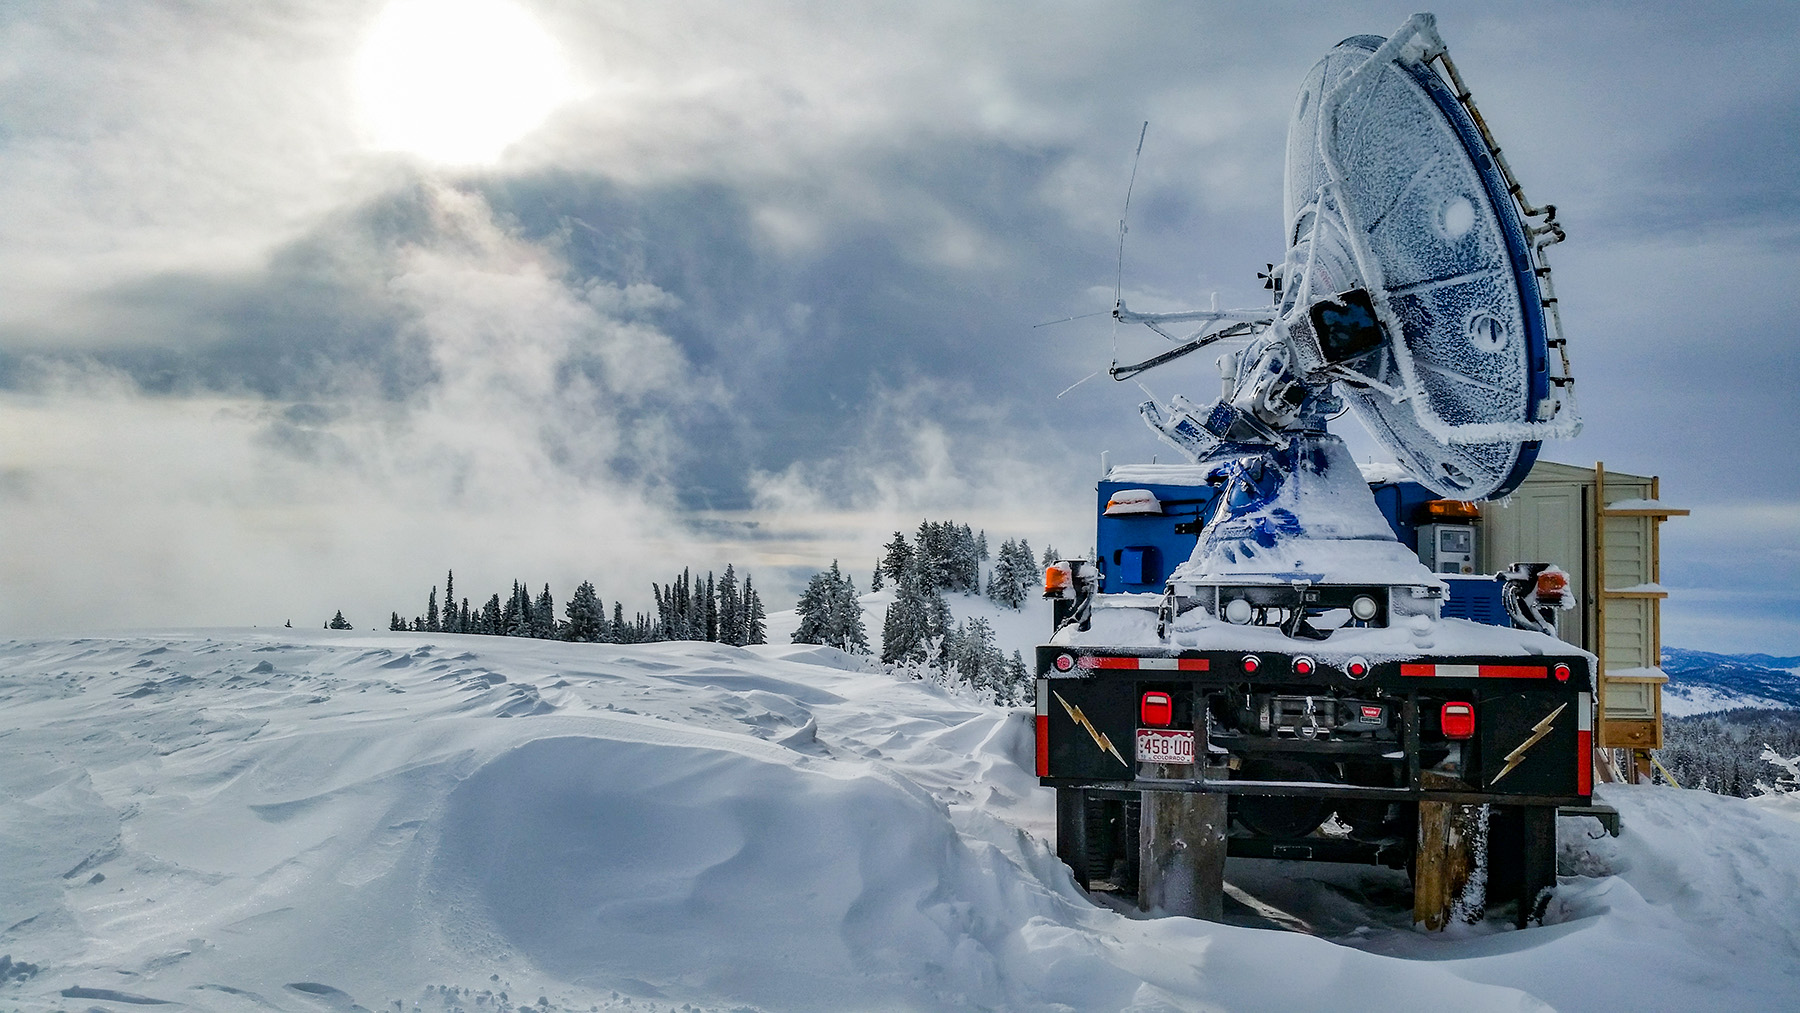 A special mountaintop radar called Doppler on Wheels measures precipitation in a new multi-institution cloud seeding study.  Photo by Joshua Aikins